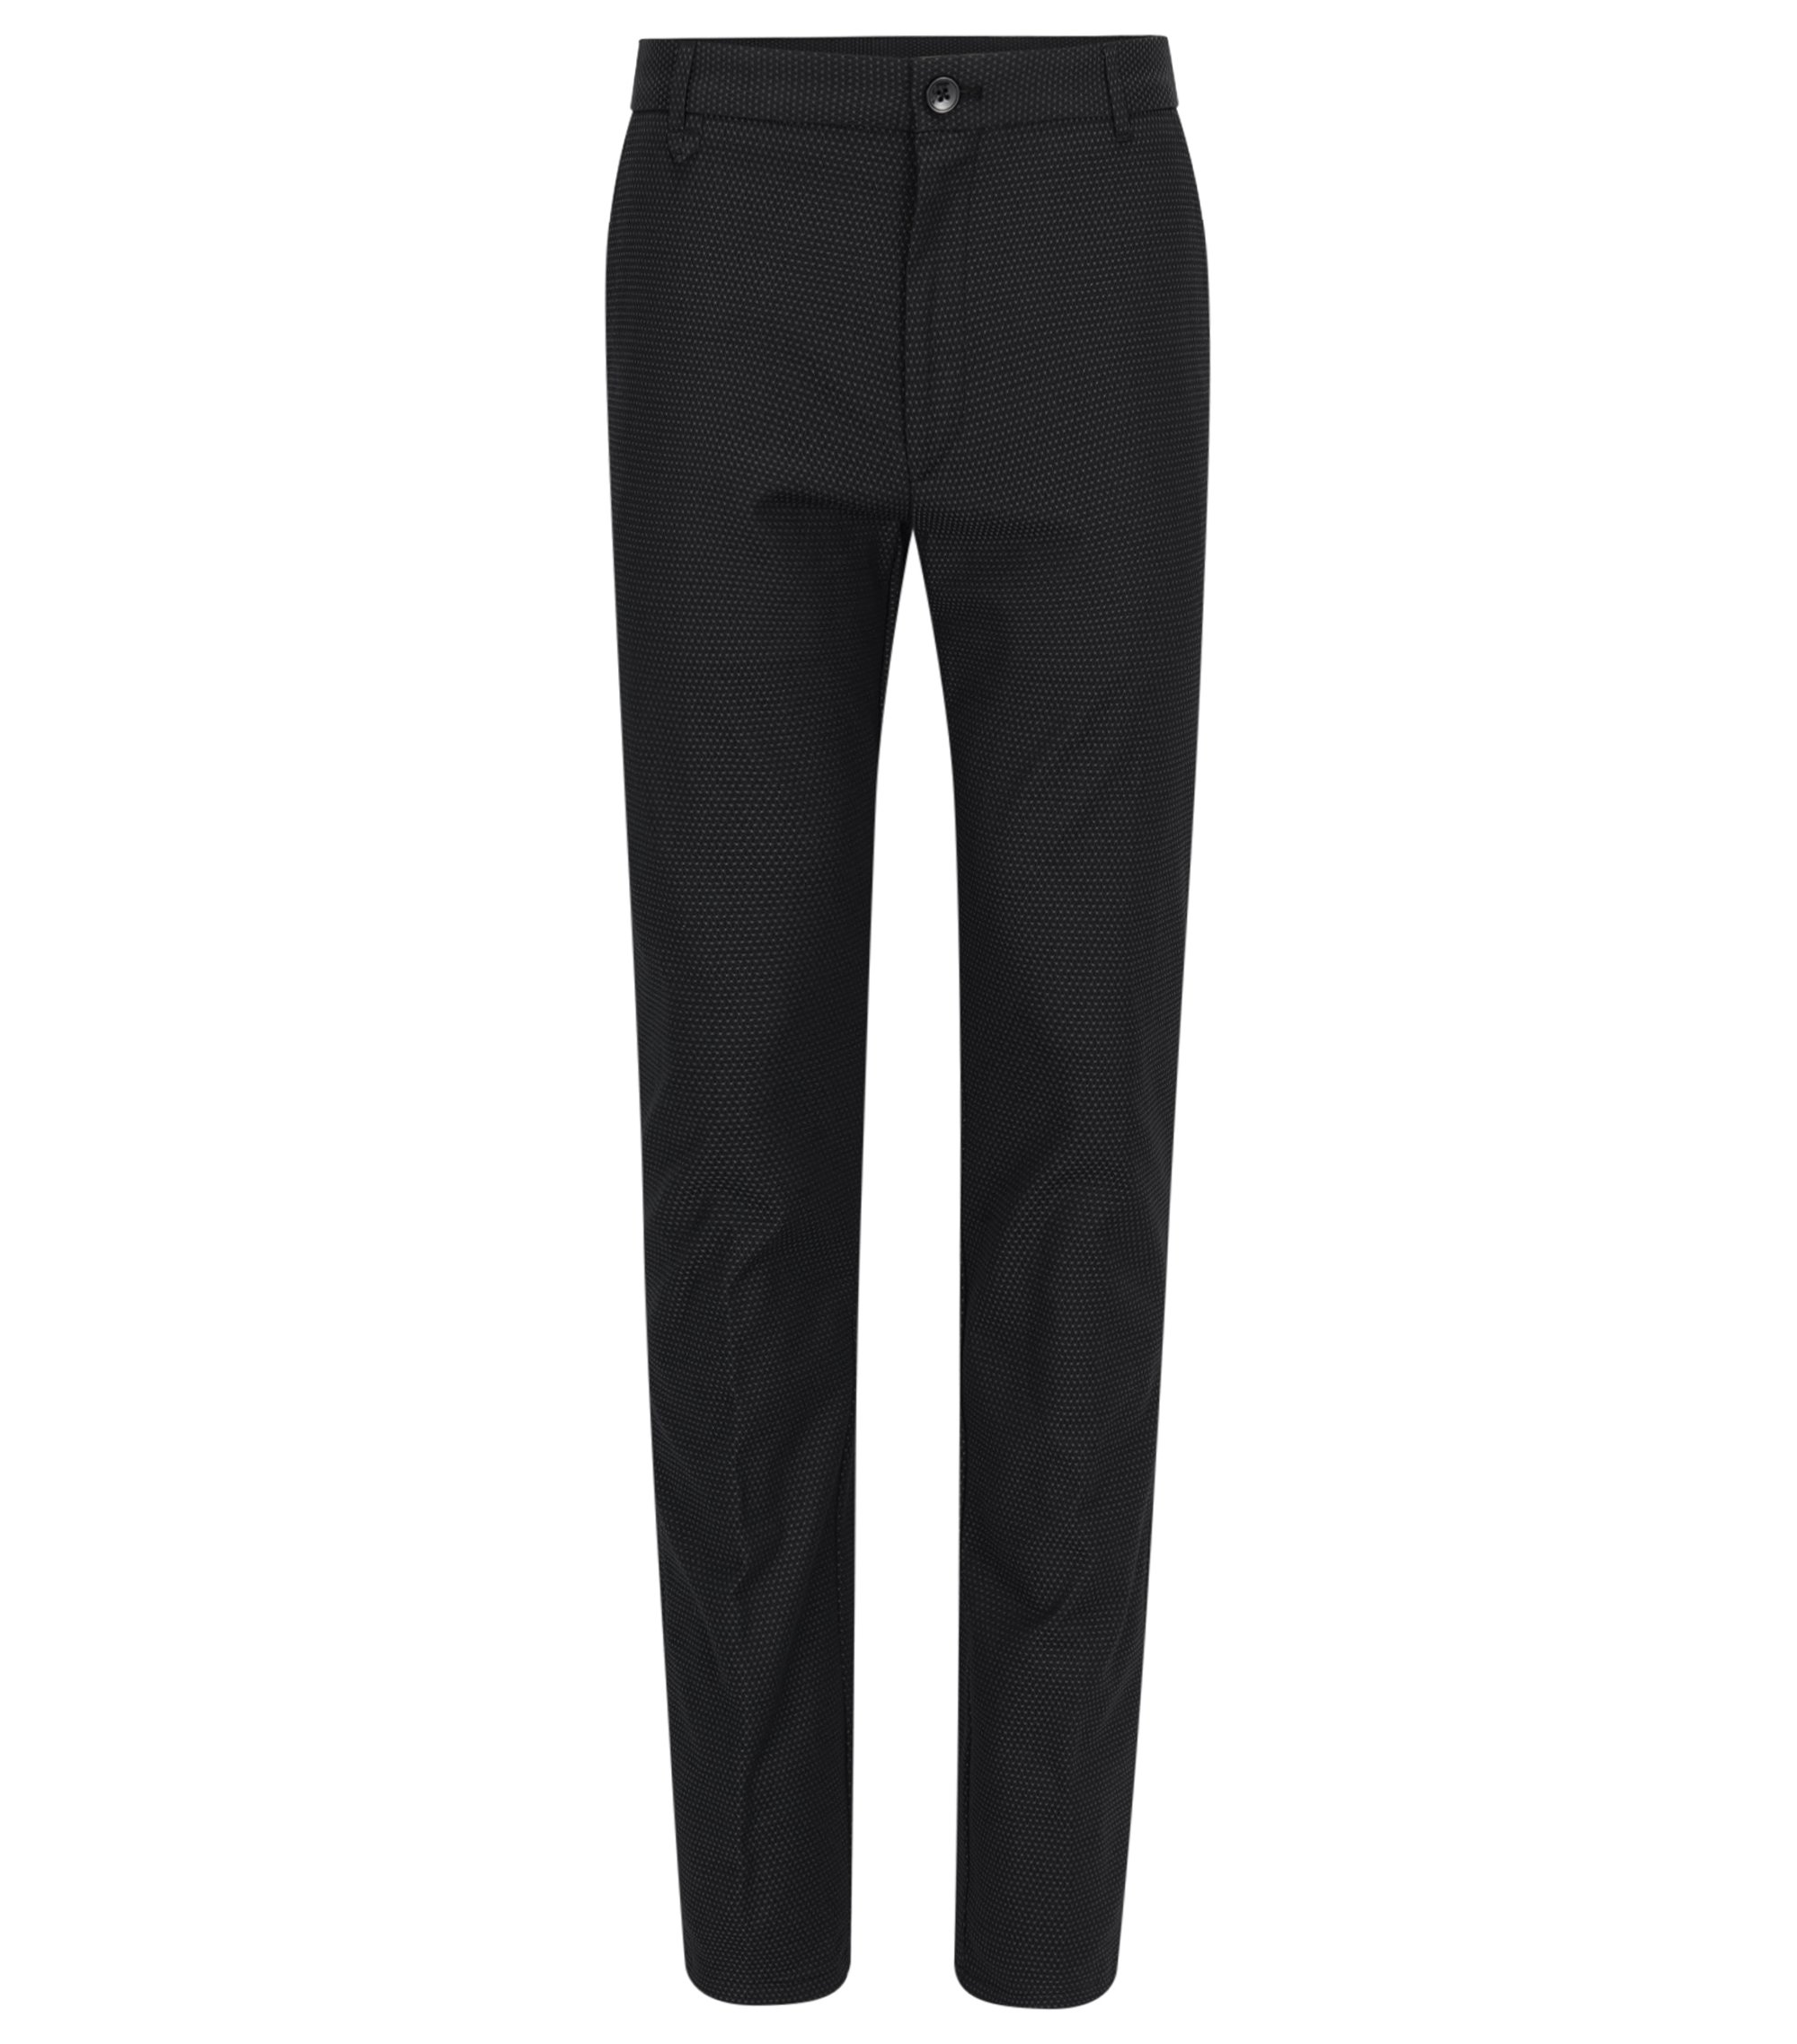 Patterned Stretch Cotton Pants, Extra Slim Fit | Heldor, Black